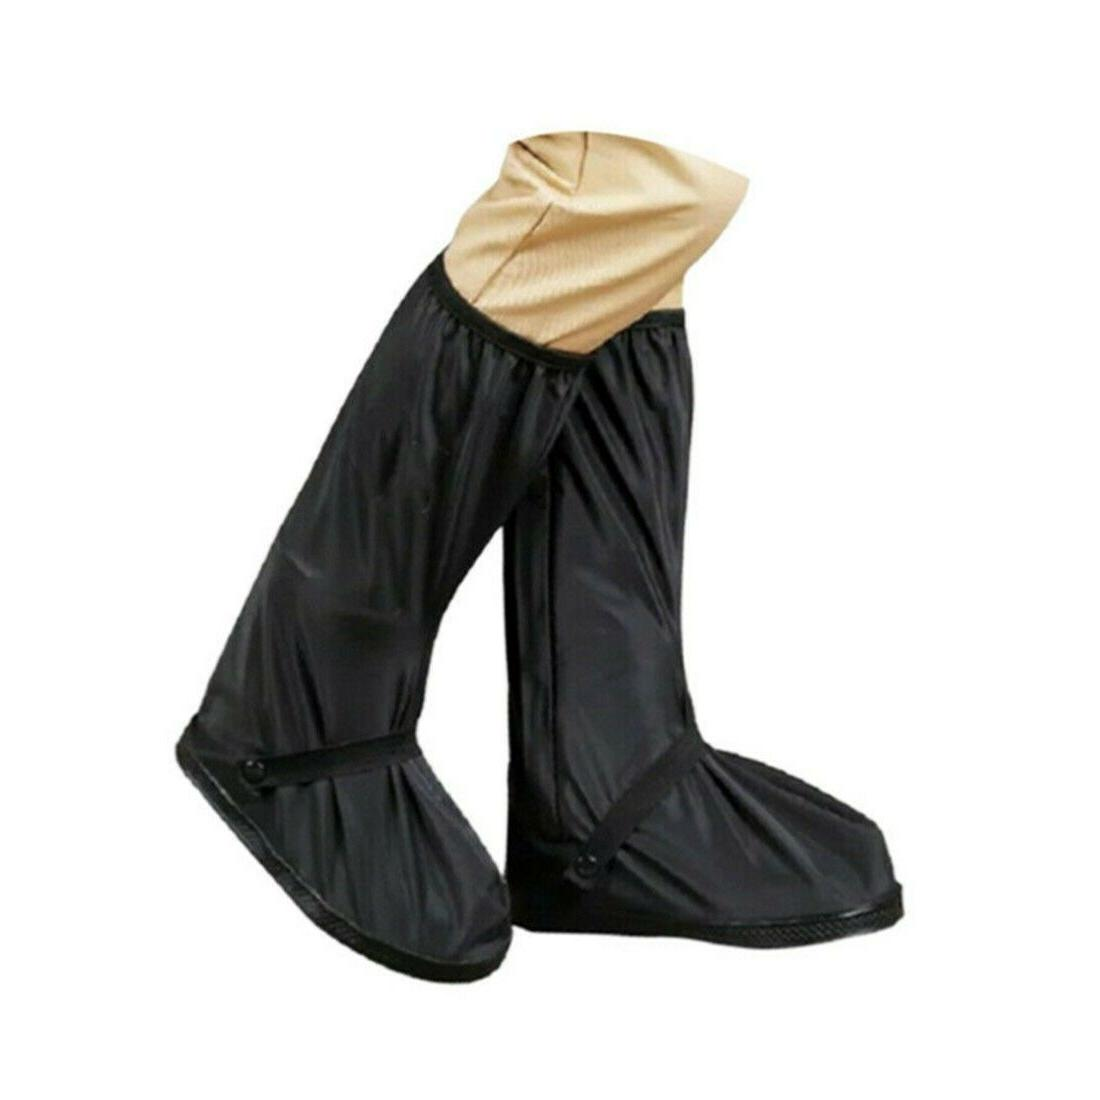 Reusable Covers Anti-slip Boots S-XXL